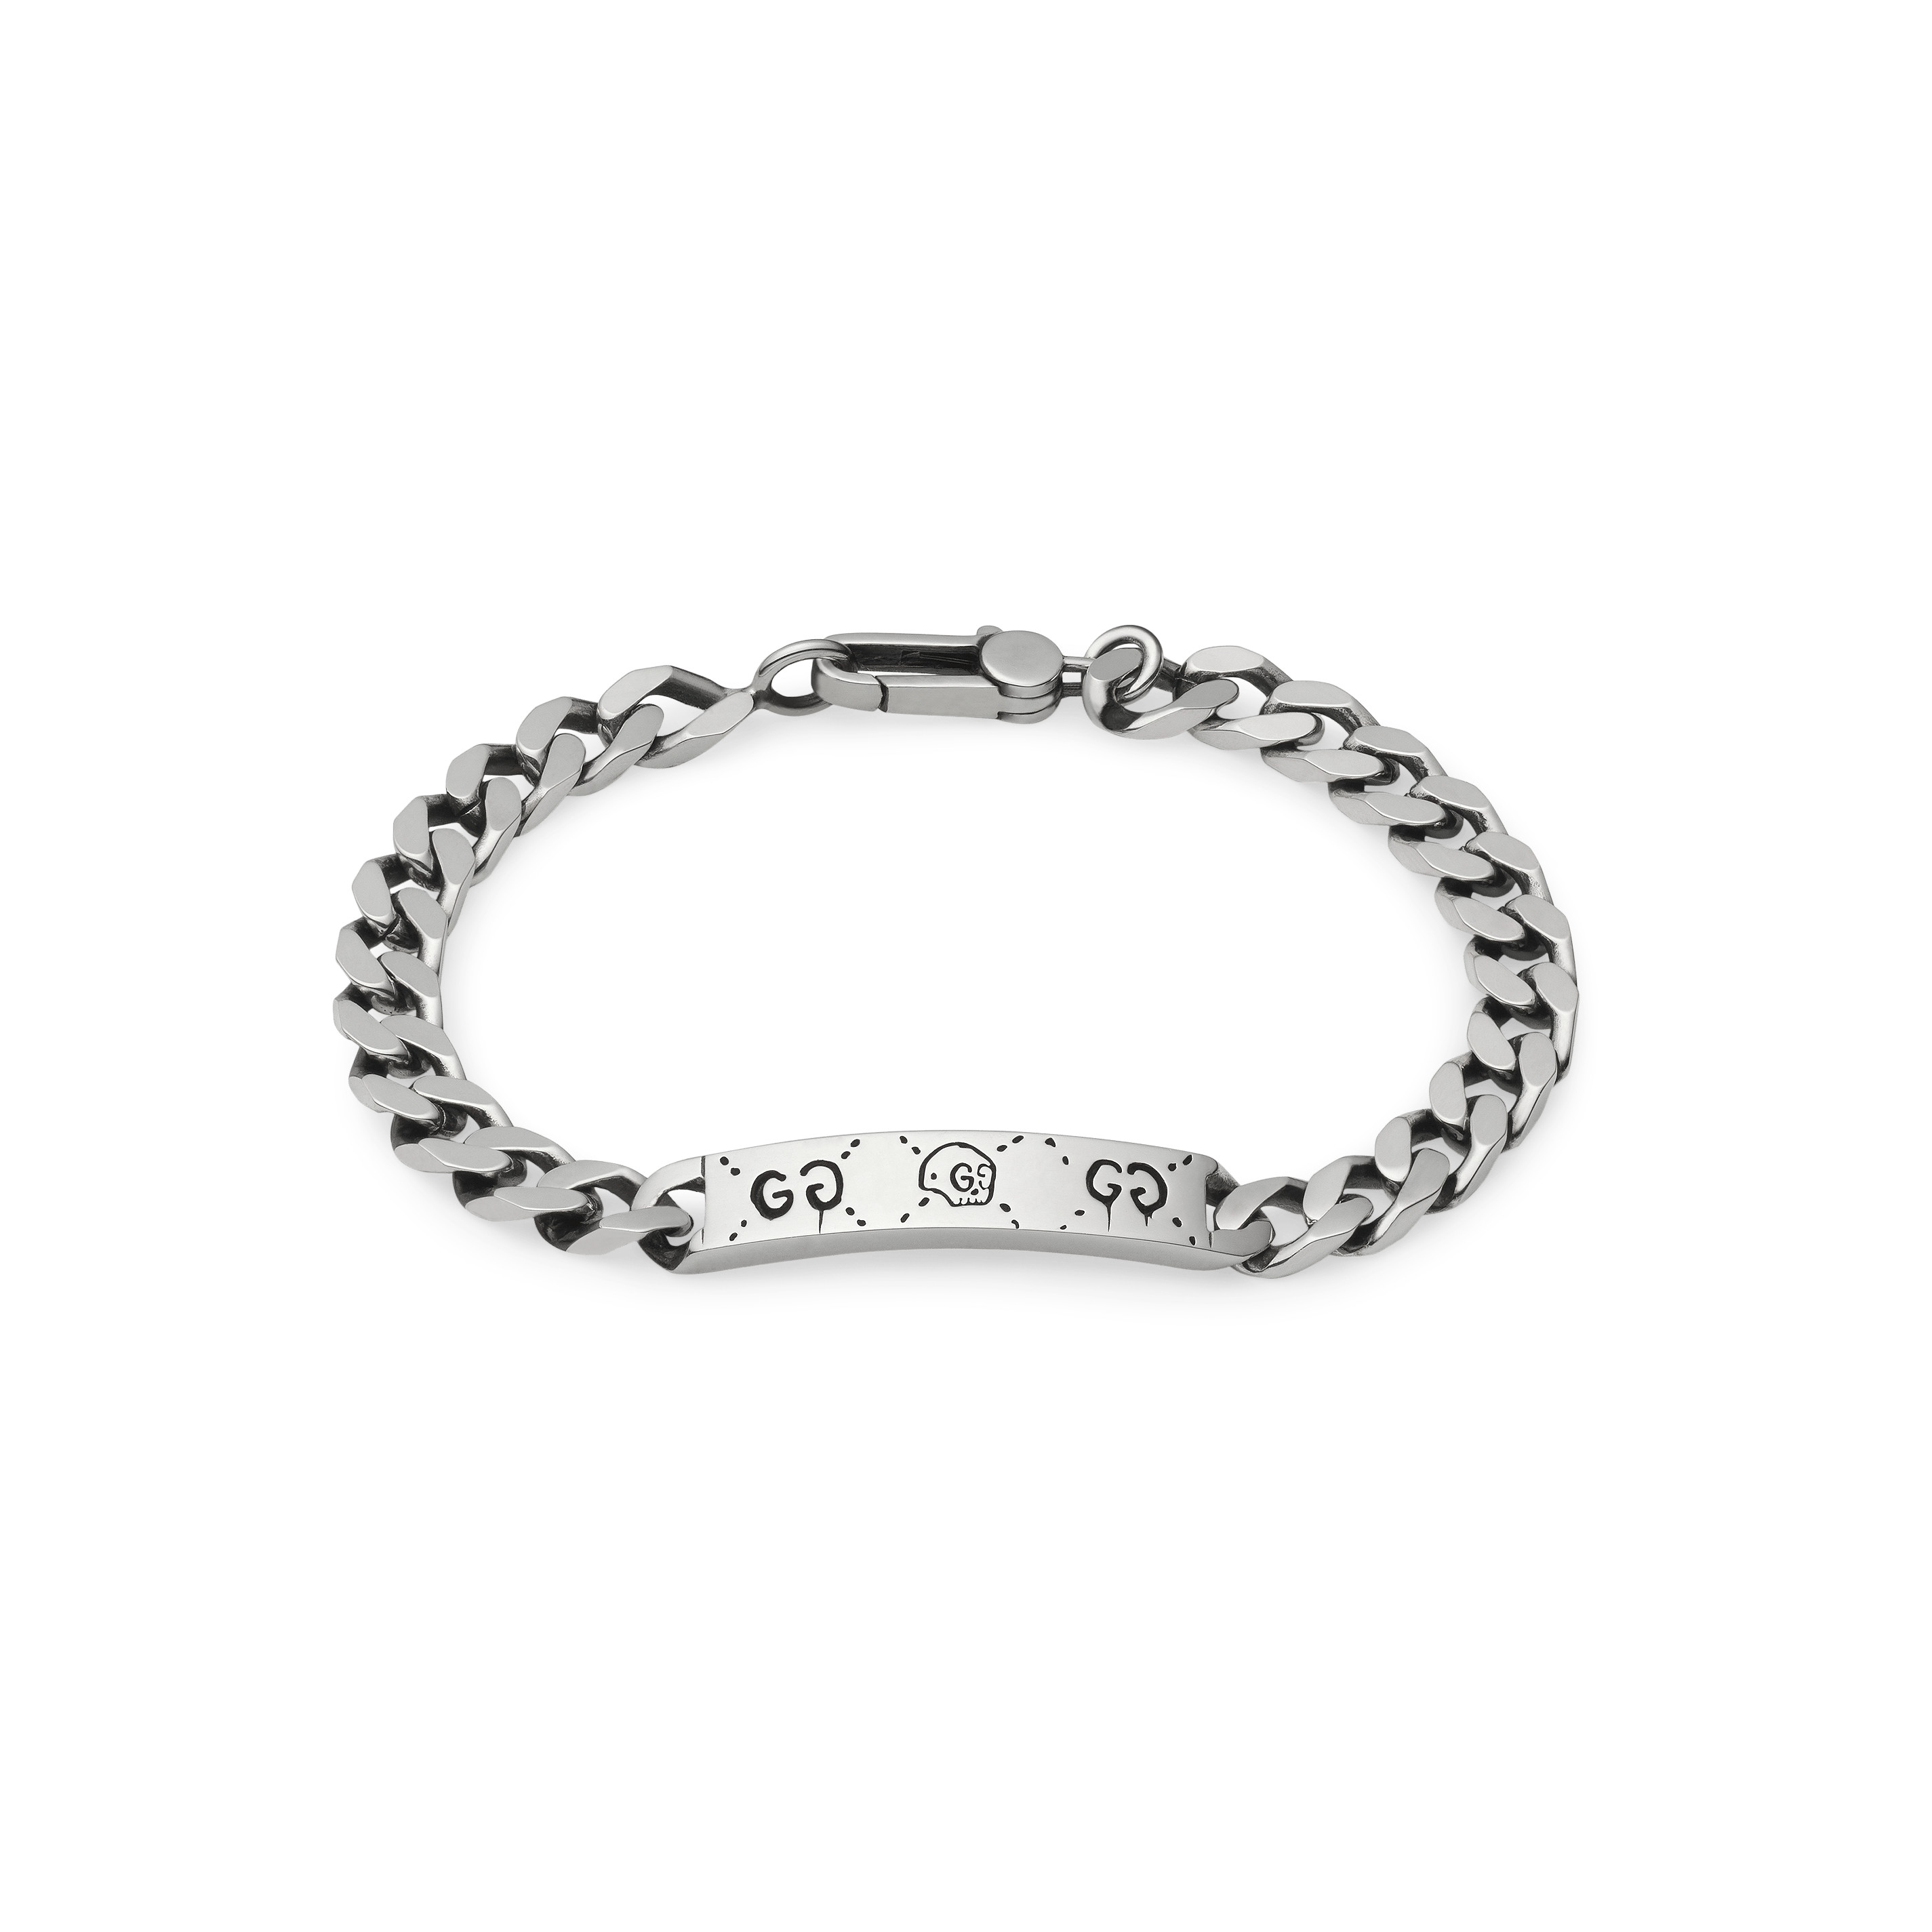 Bracelet gucci silver with chain Trouble Andrew 18cm plate YBA455321001